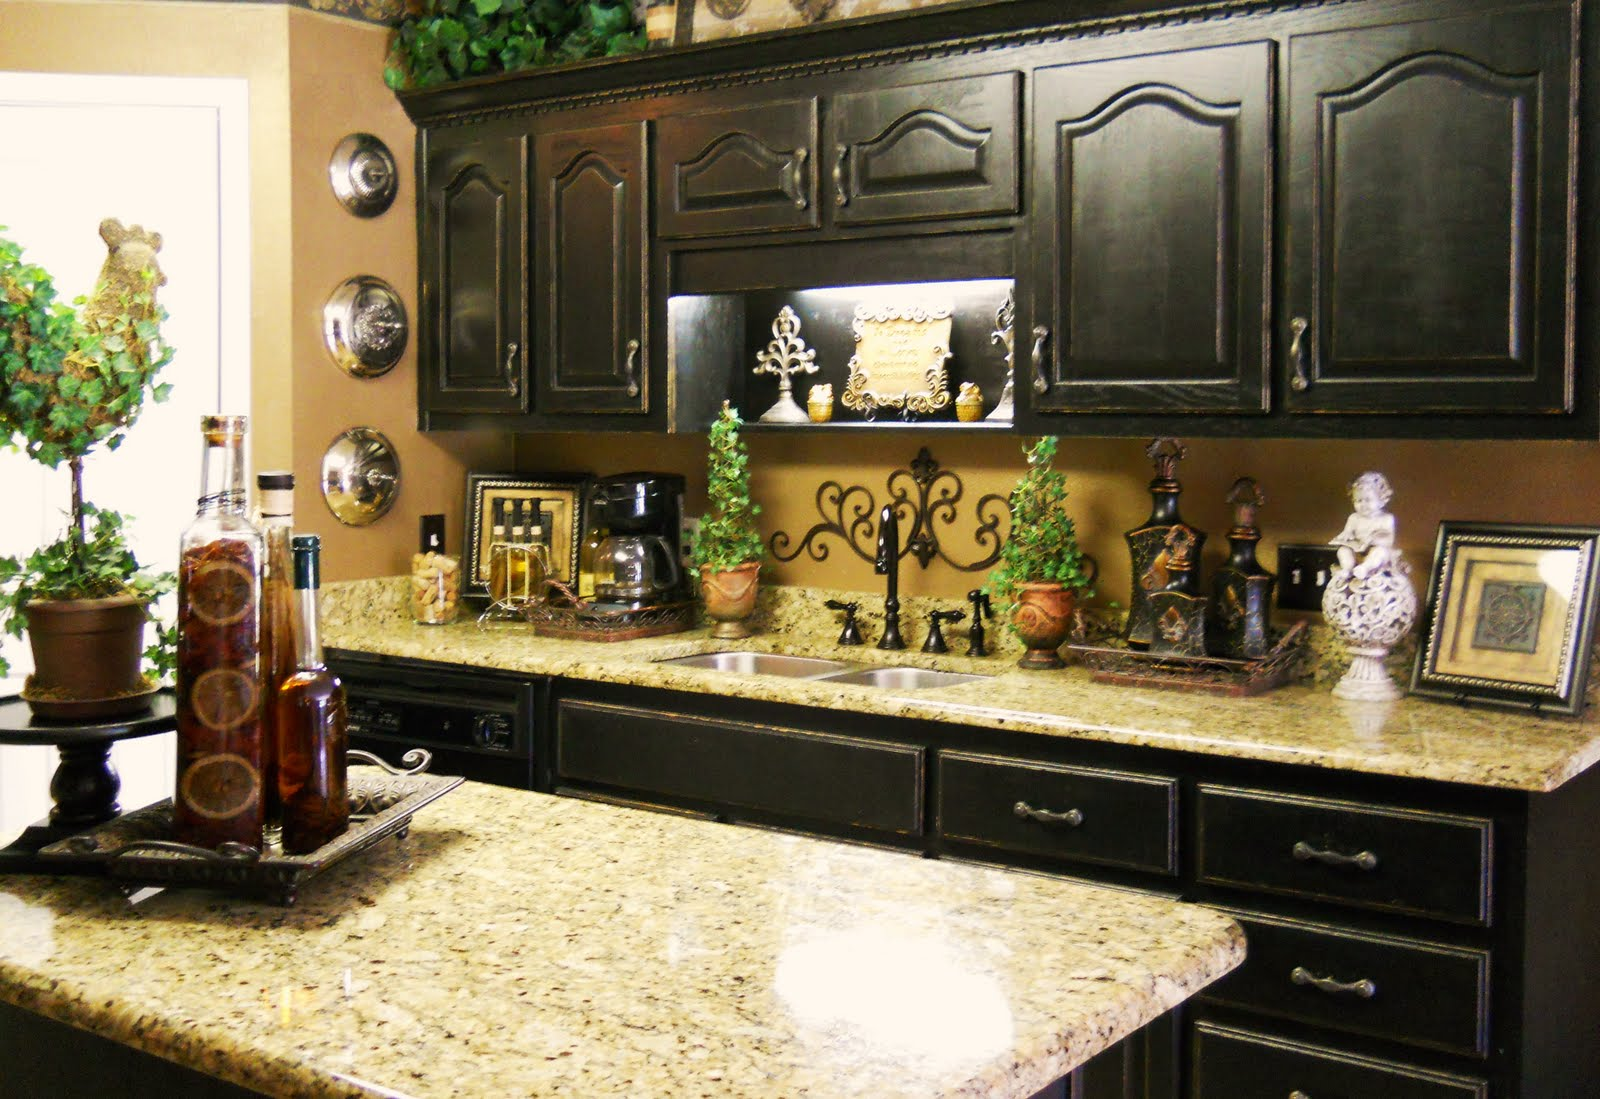 Kitchen Decorating Themes 7 Recommended Kitchen Decorating Themes For Perfecting Your